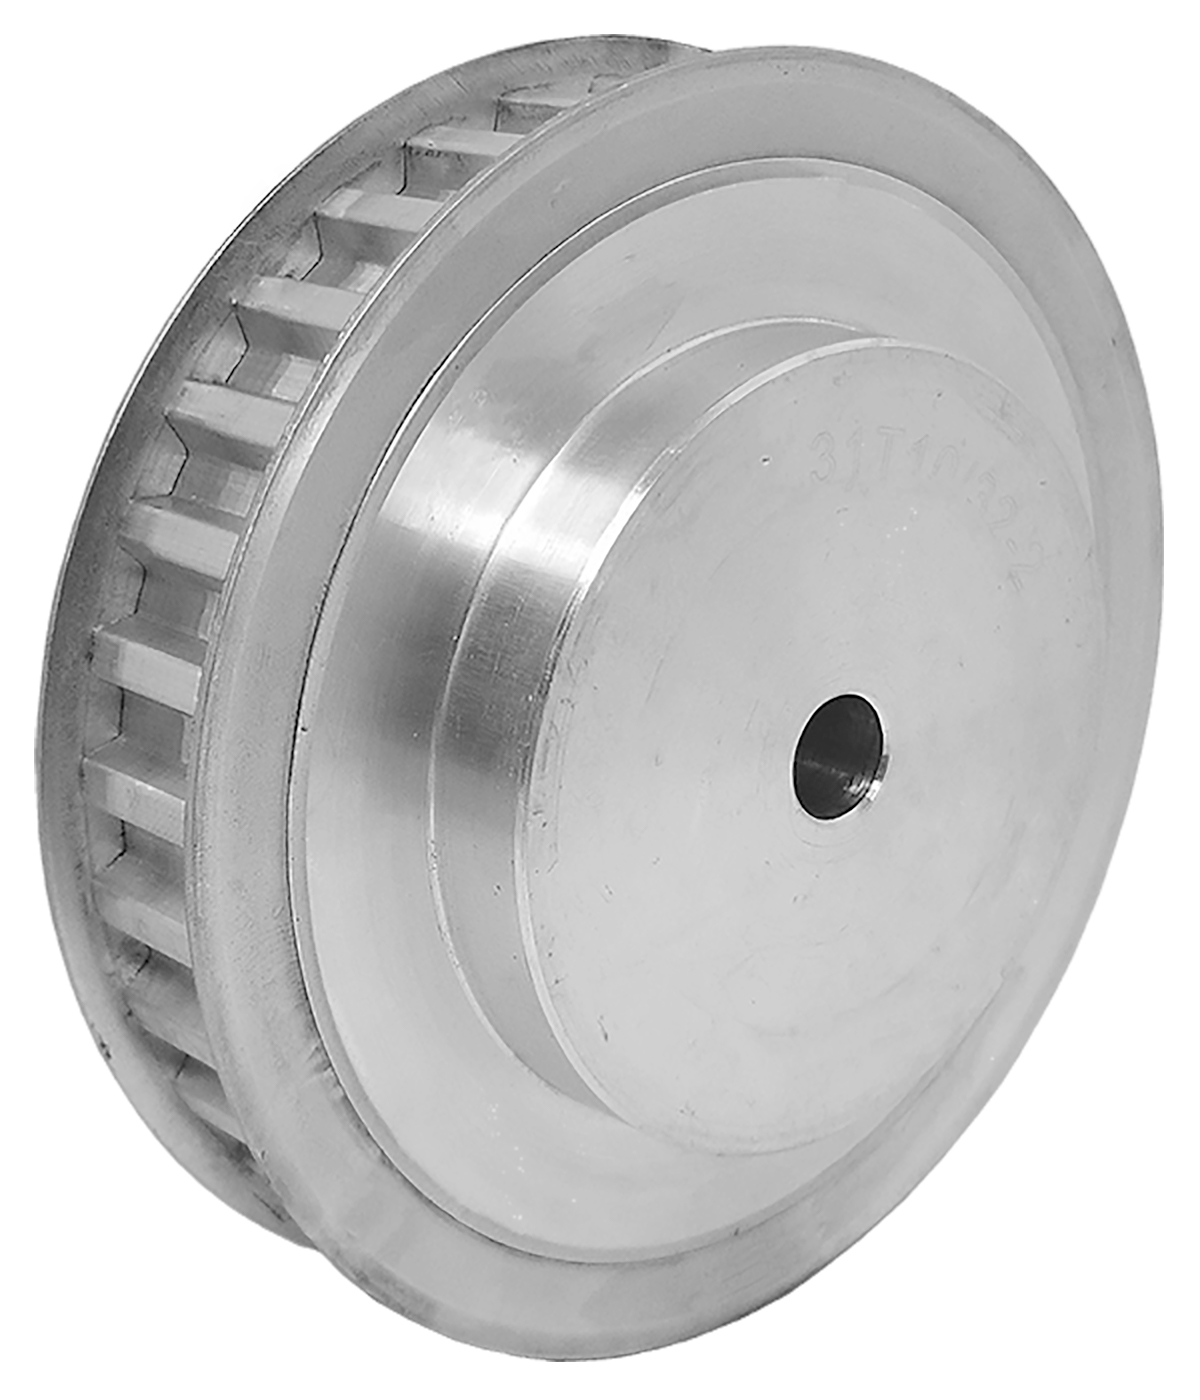 31T10/32-2 - Aluminum Metric Pulleys